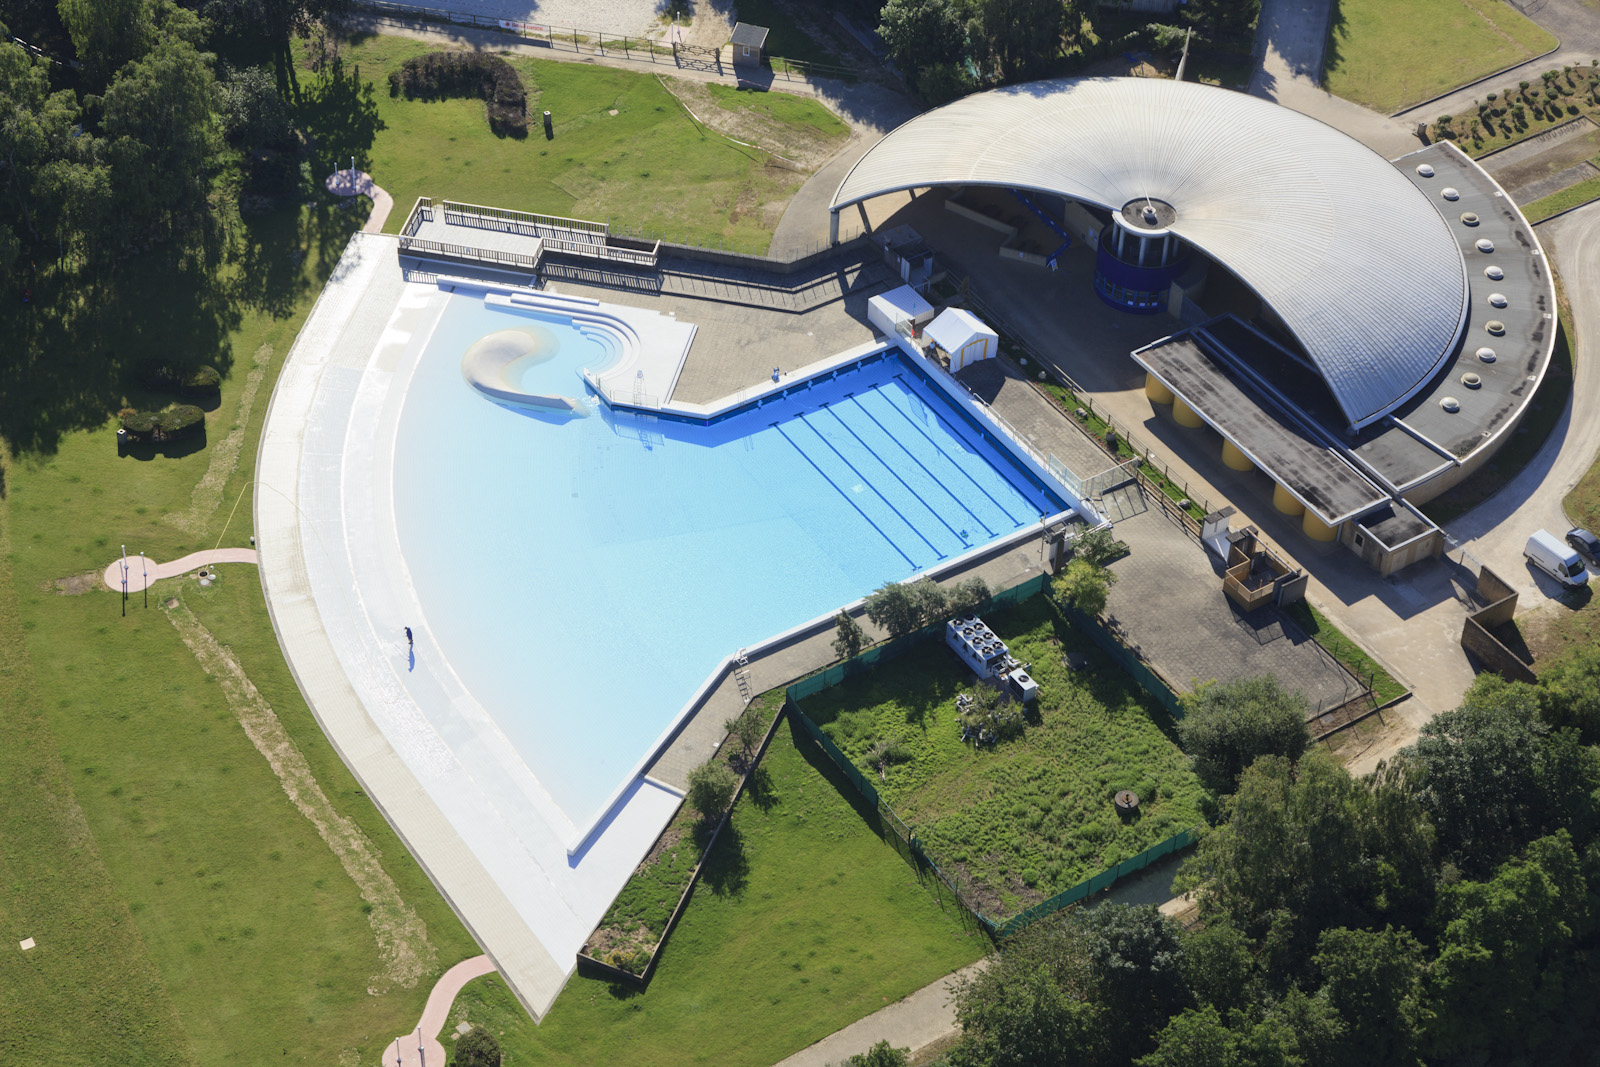 Vue a rienne loisirs matthieu colin photographe for Piscine yvelines